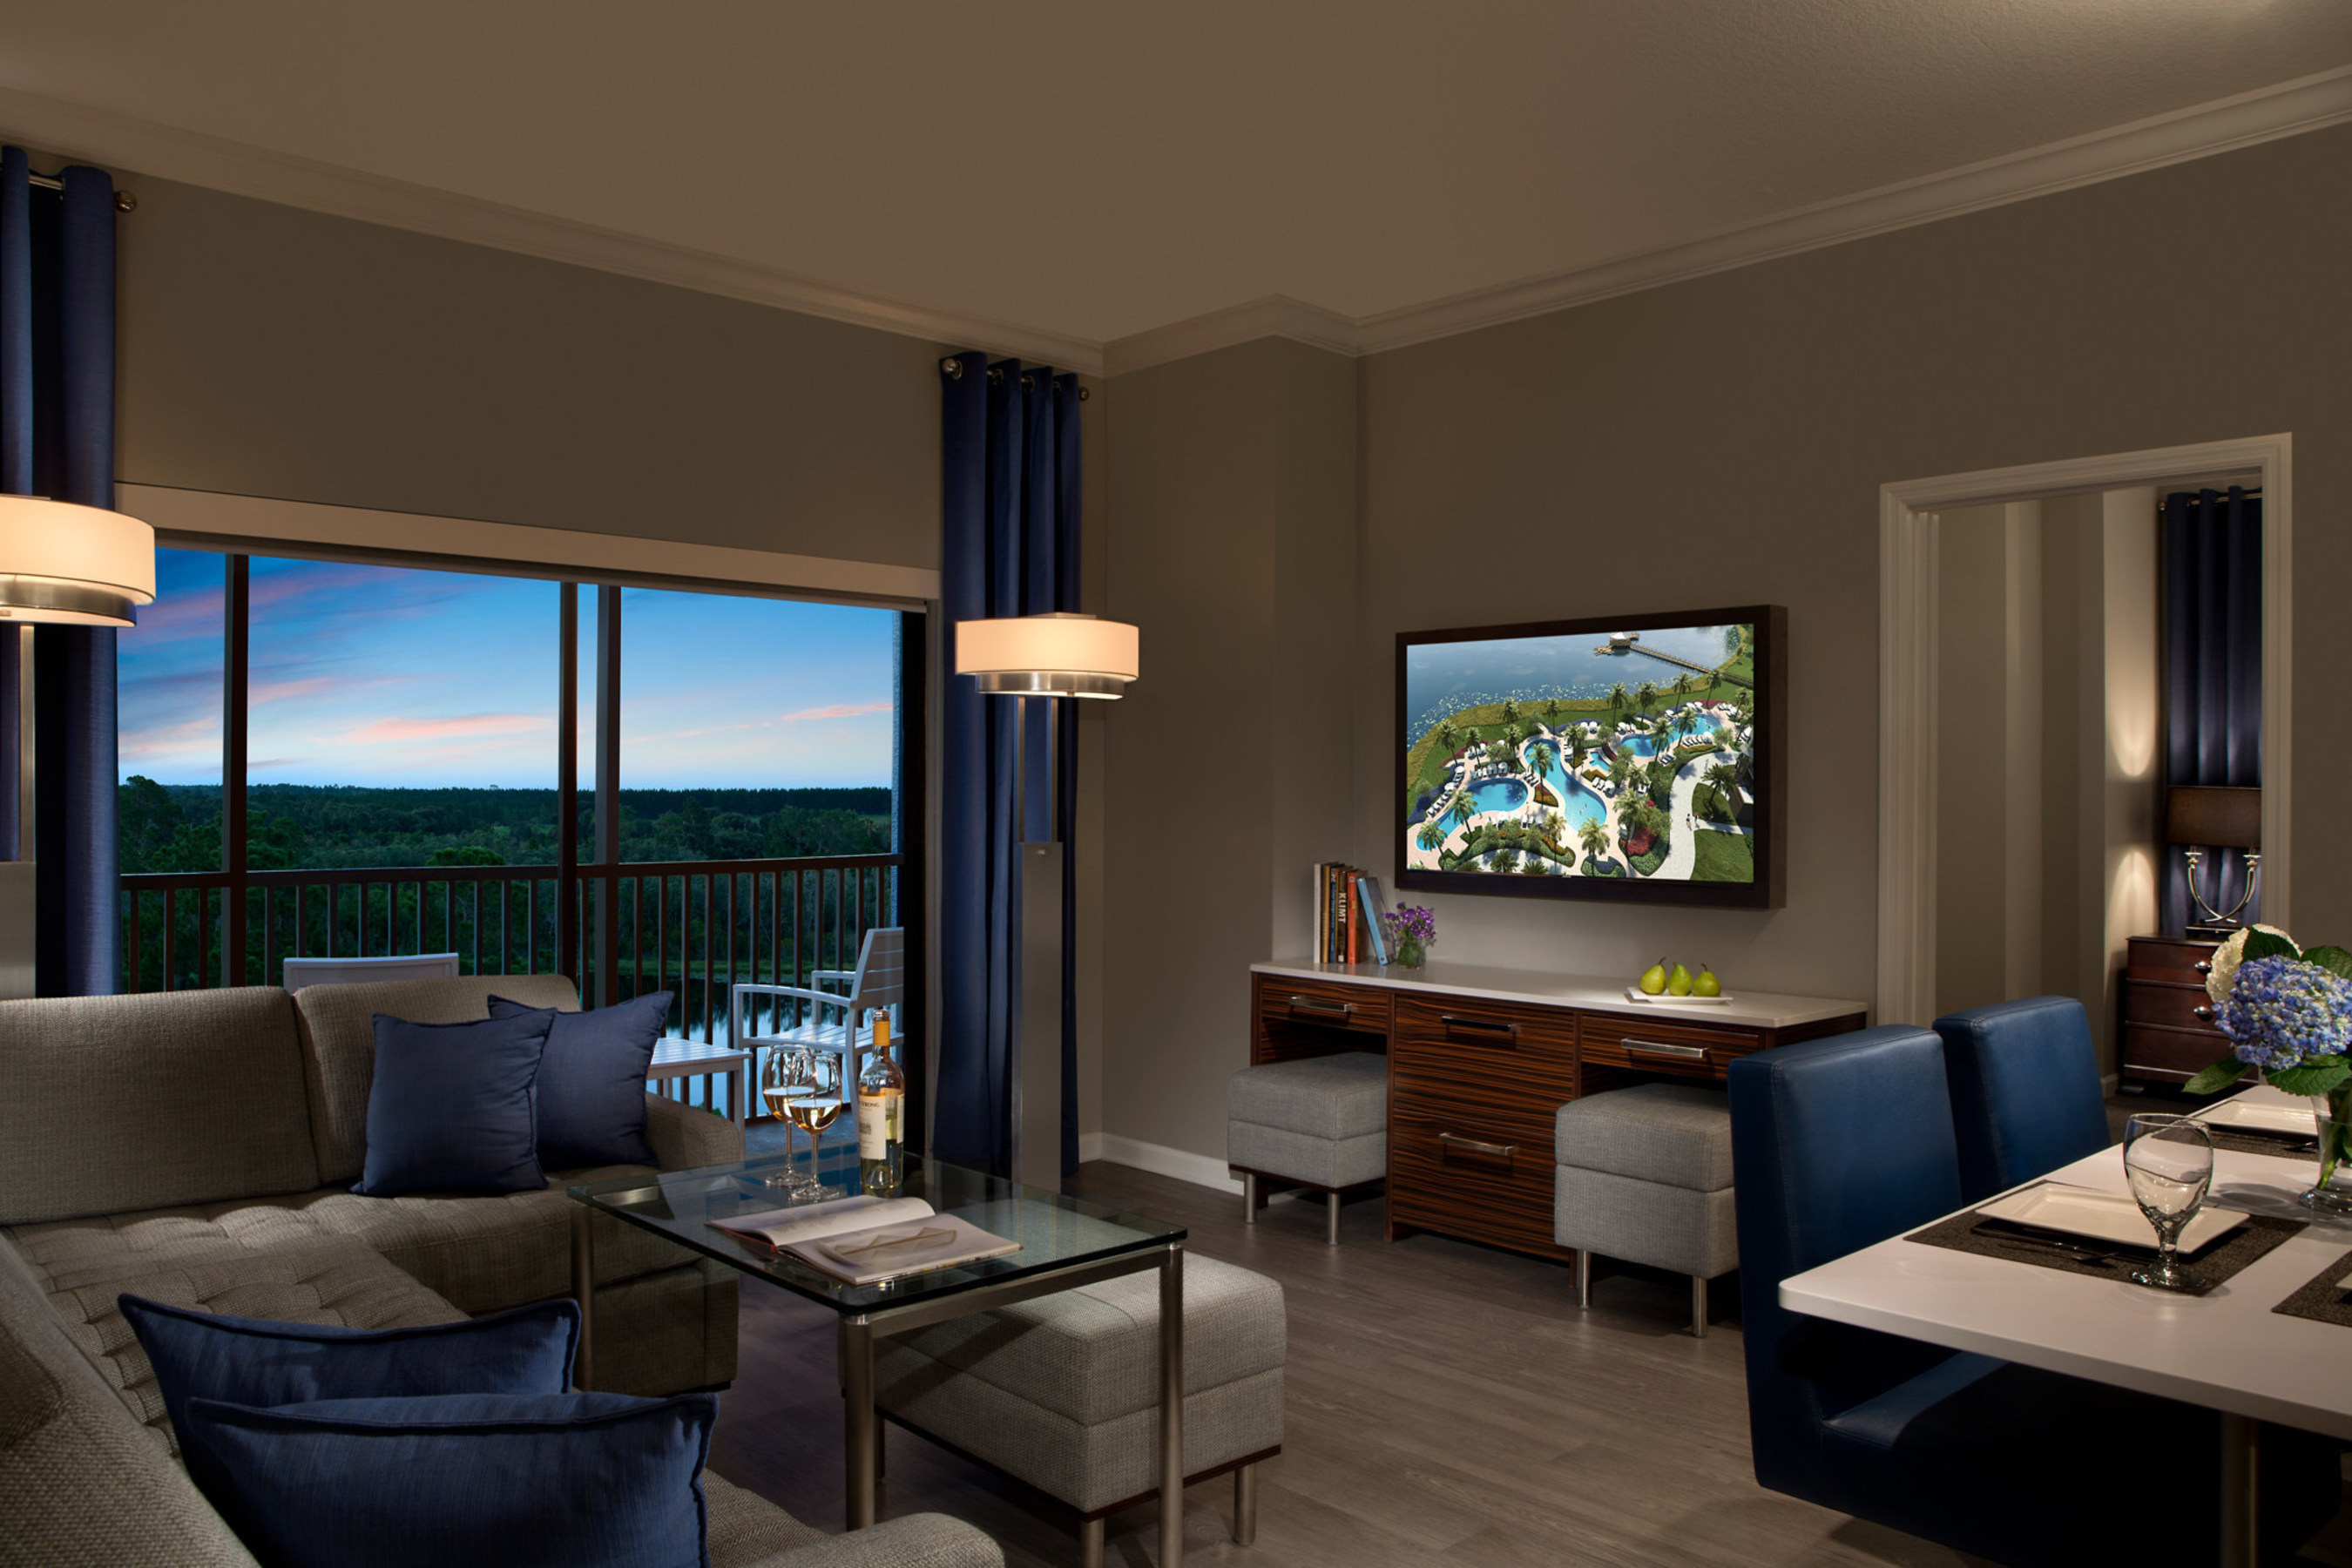 A guest suite living room at The Grove Resort & Spa, a new, all-suite hotel destination opening February 2017 in Orlando, just five minutes west of Walt Disney World. This 106-acre resort sits lakefront on a portion of Central Florida's conservation grounds. The Grove will feature all-suite accommodations with one, two and three bedroom layouts, as well as four swimming pools, multiple dining and drink venues, water sports, a spa, game room, event facilities, and an on-site water park.